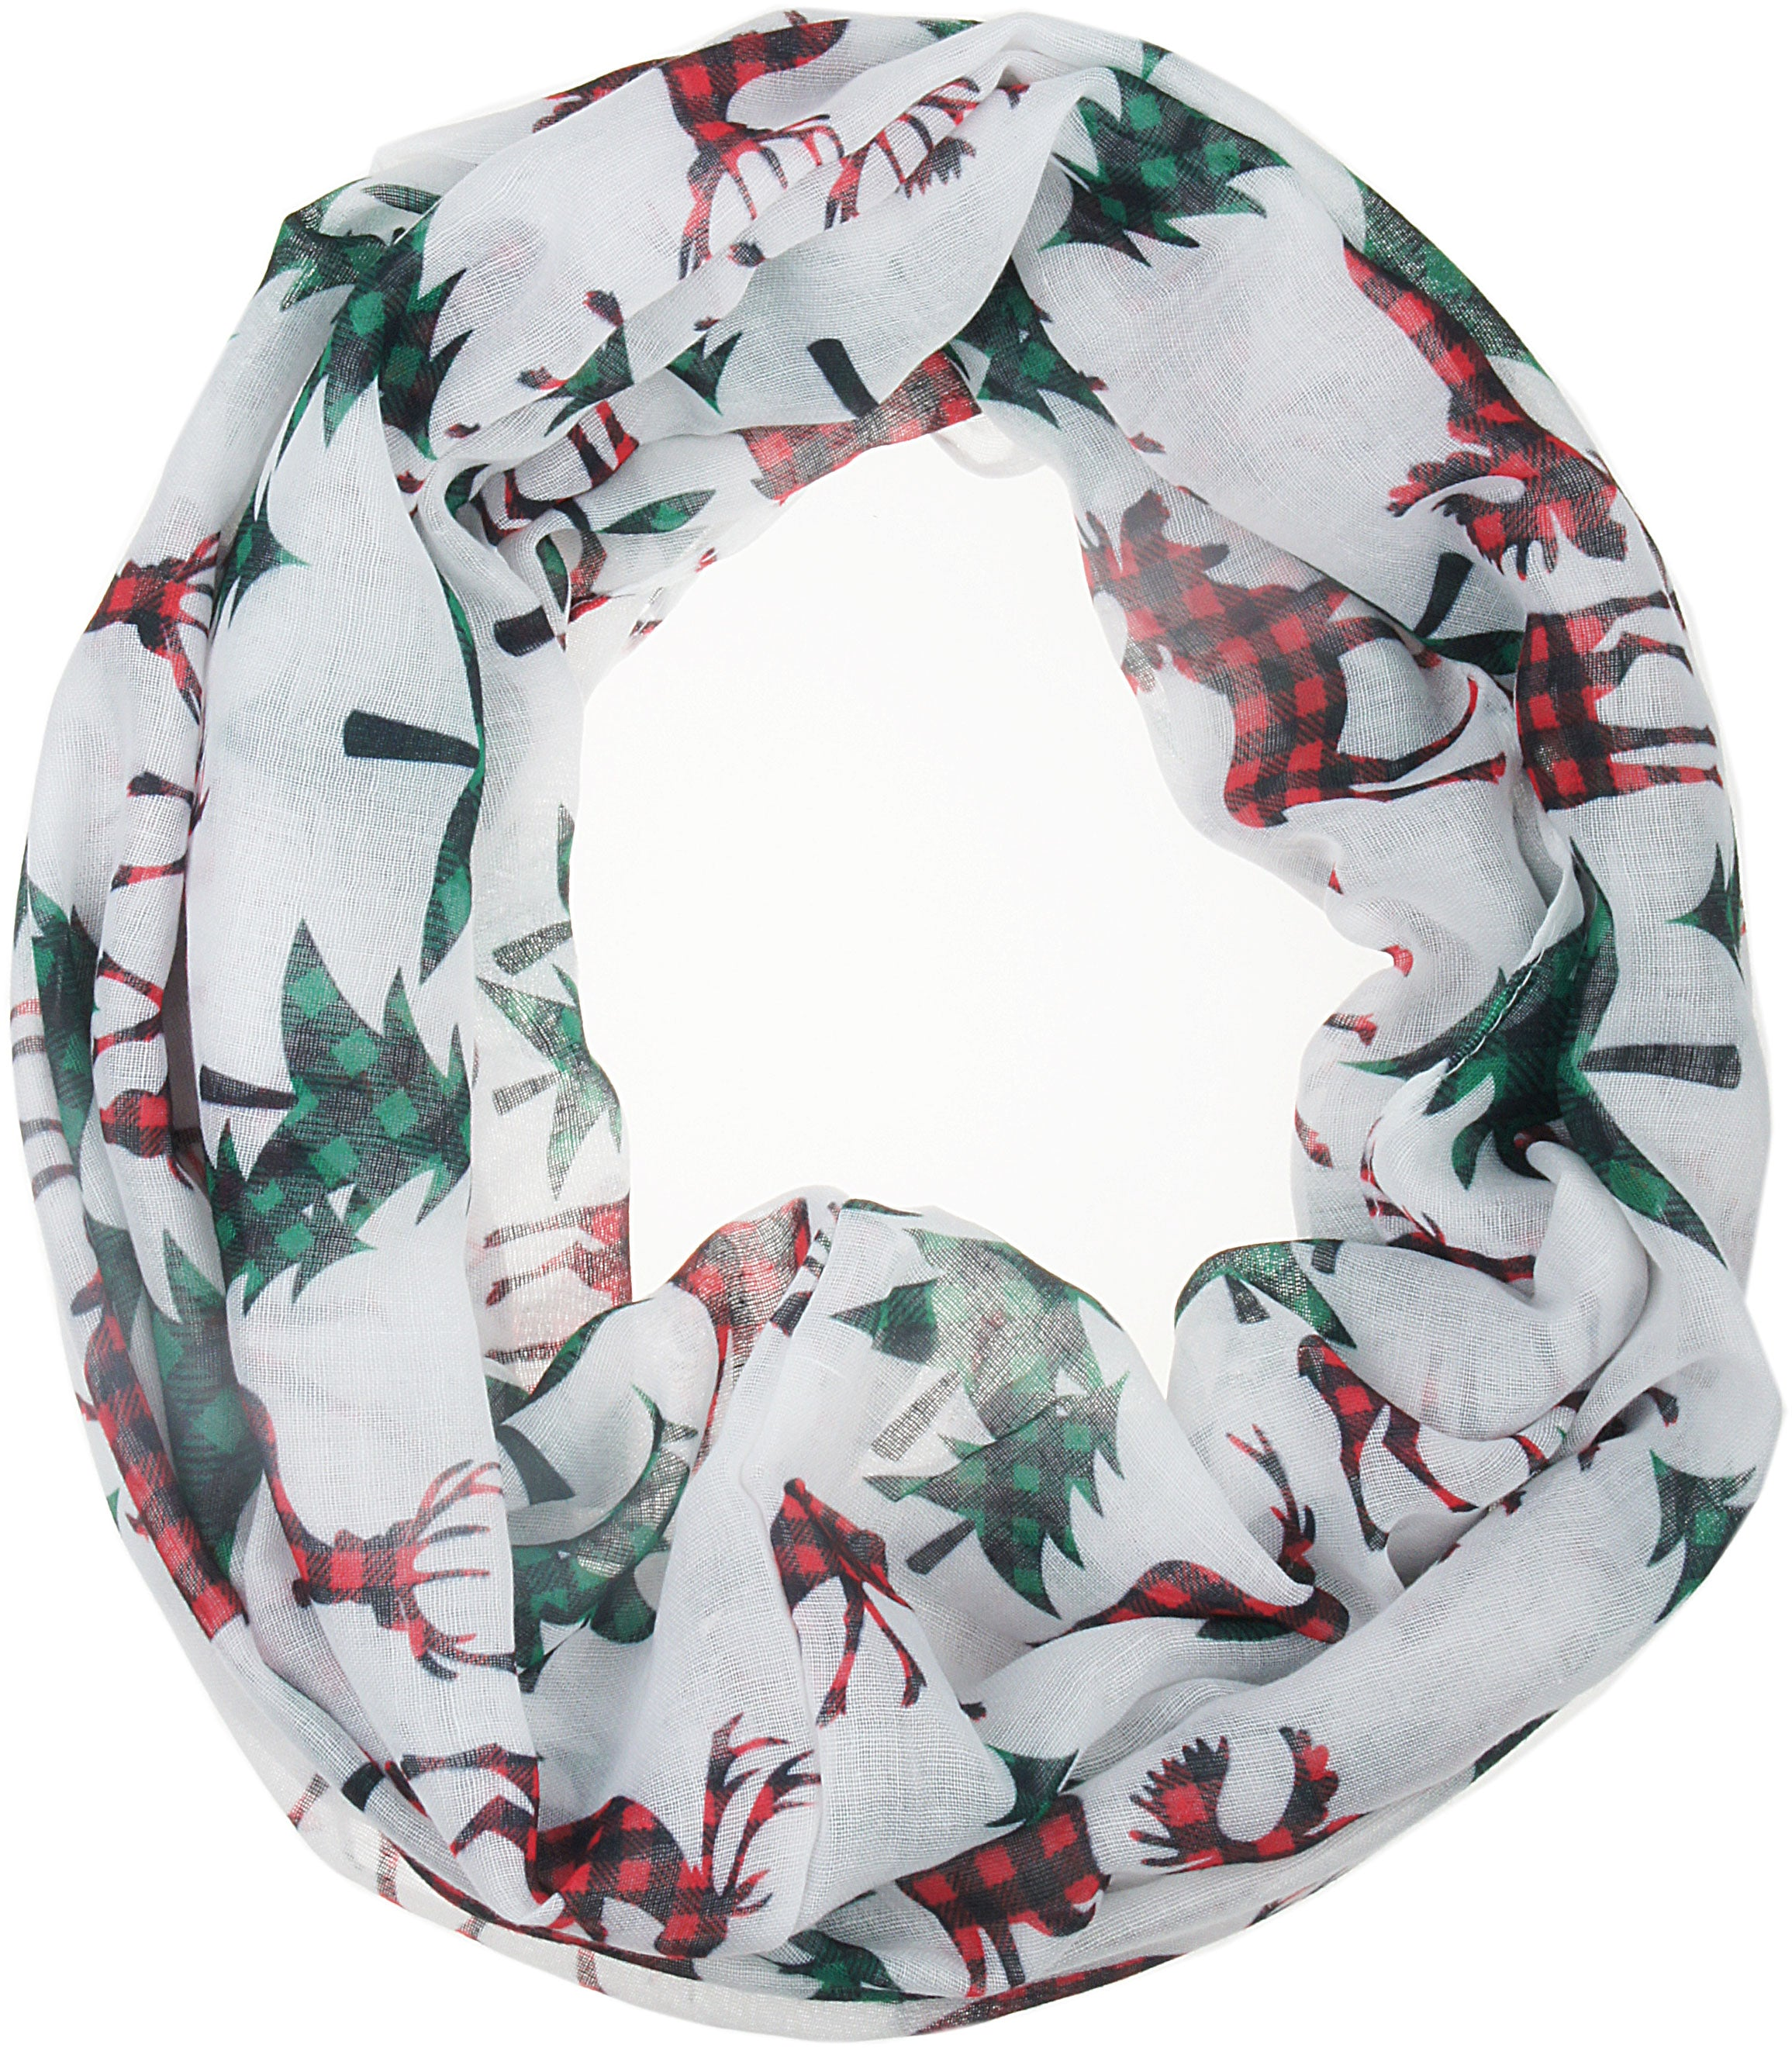 Soft Lightweight Christmas Holiday Sheer Infinity Scarf for Women Girls